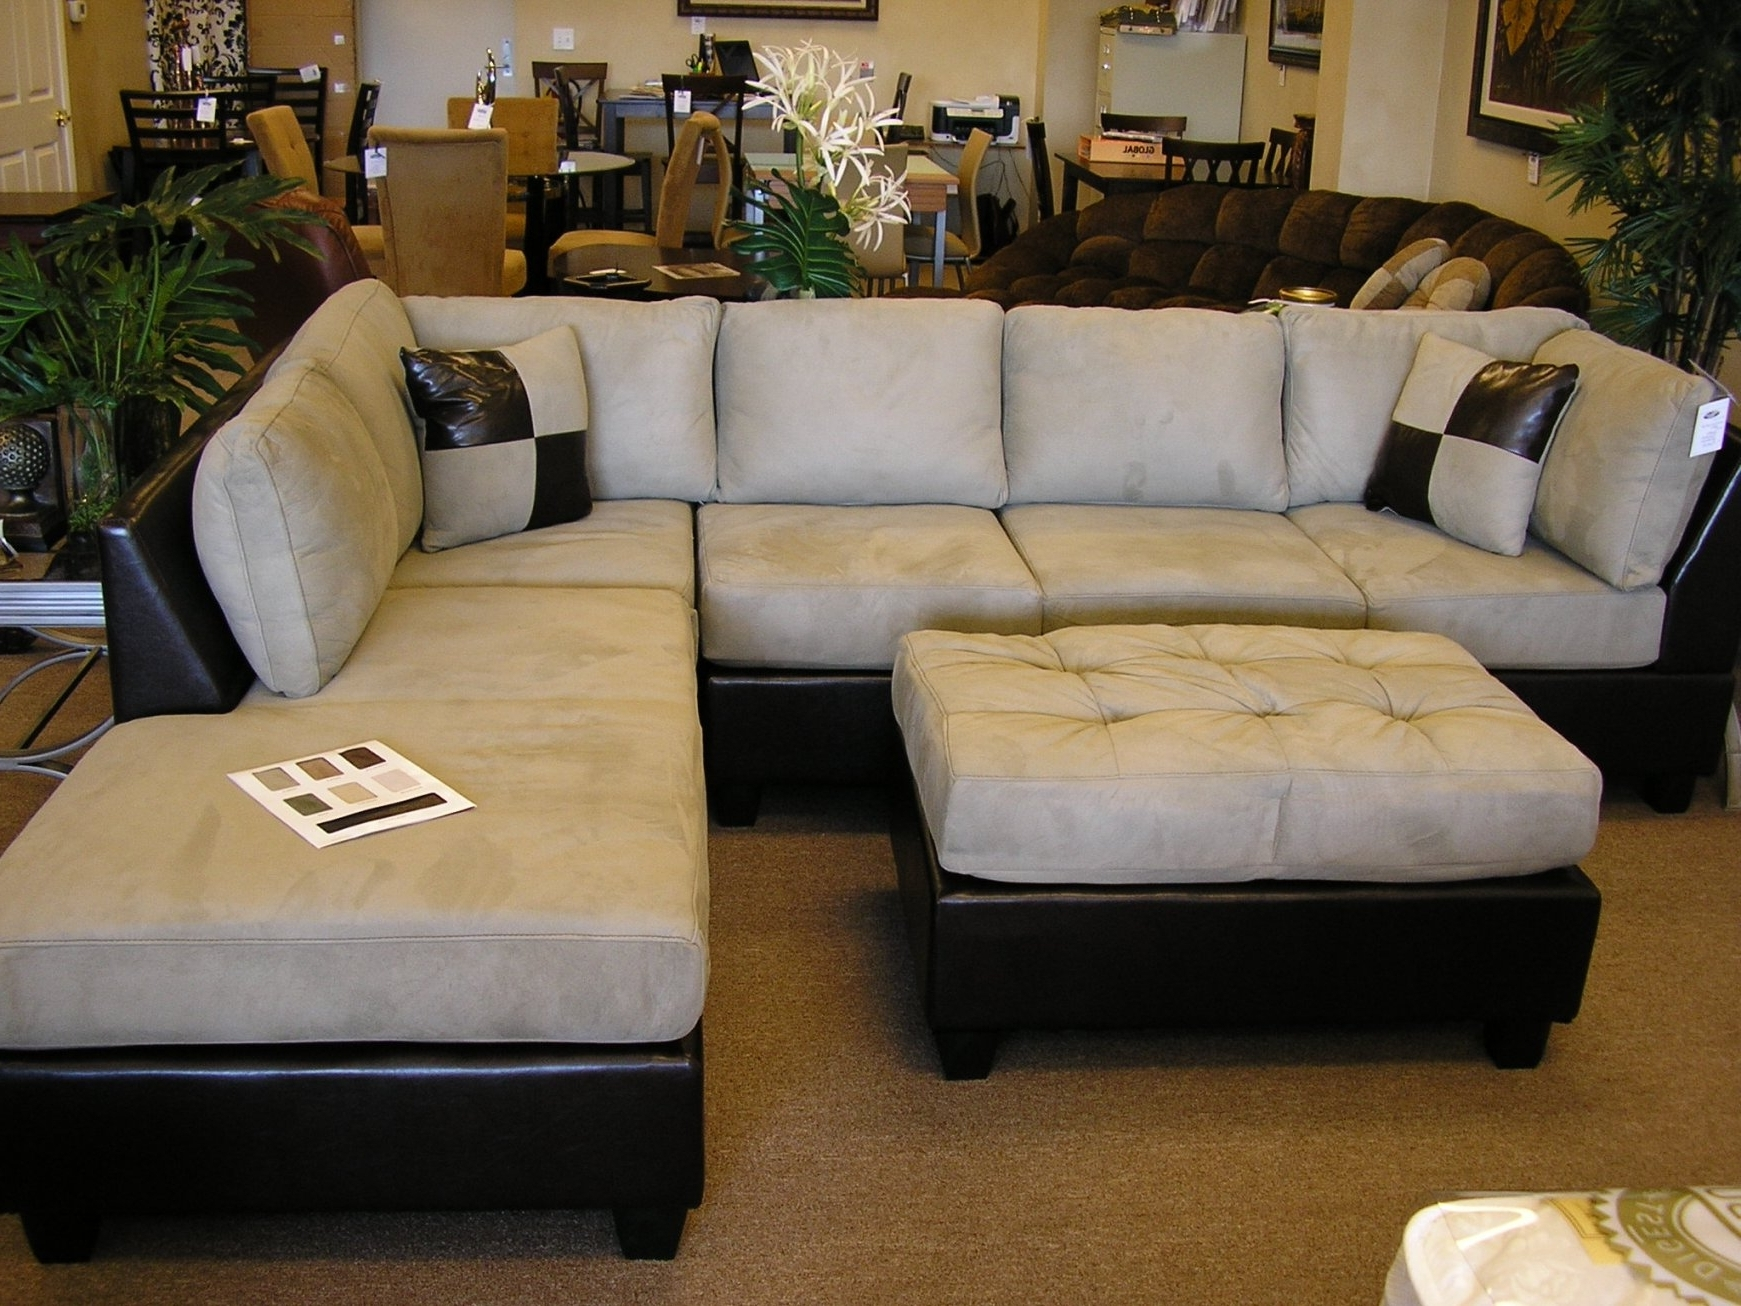 L Shaped Sofa With Chaise Lounge Inside Trendy L Shaped Couches With Chaise (View 10 of 15)